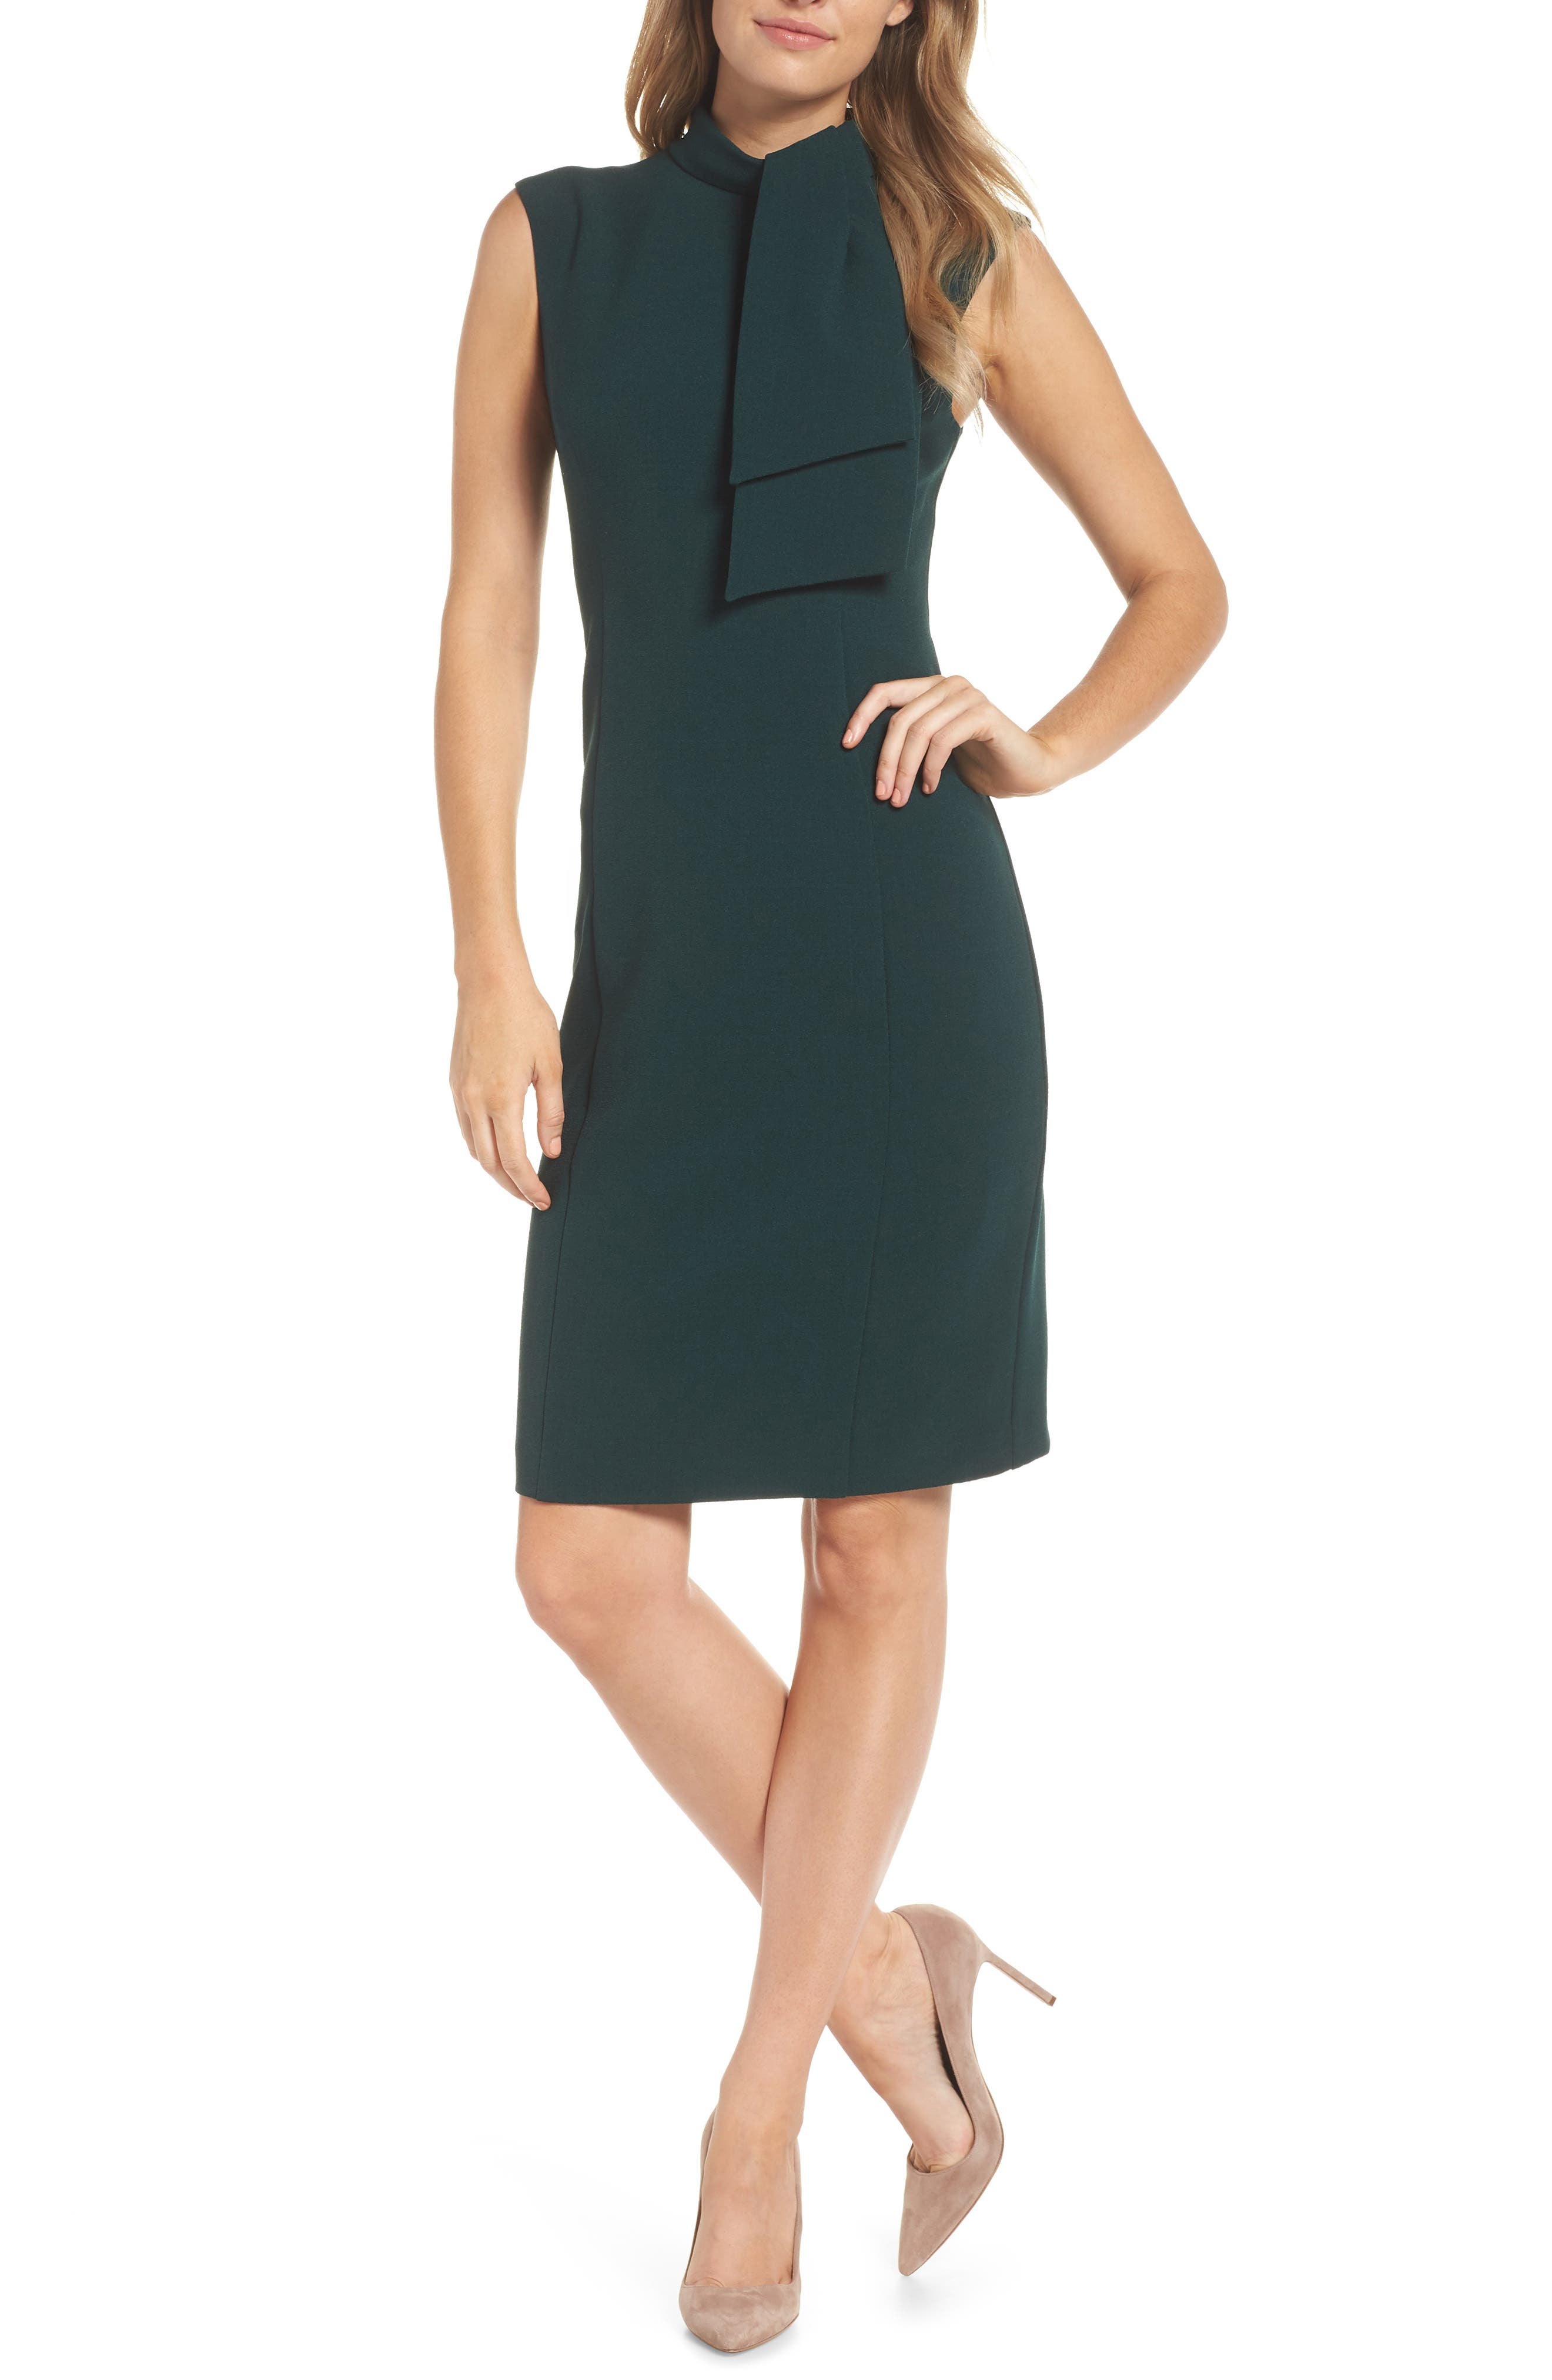 HARPER ROSE,                             Tie Neck Sheath Dress,                             Alternate thumbnail 6, color,                             302